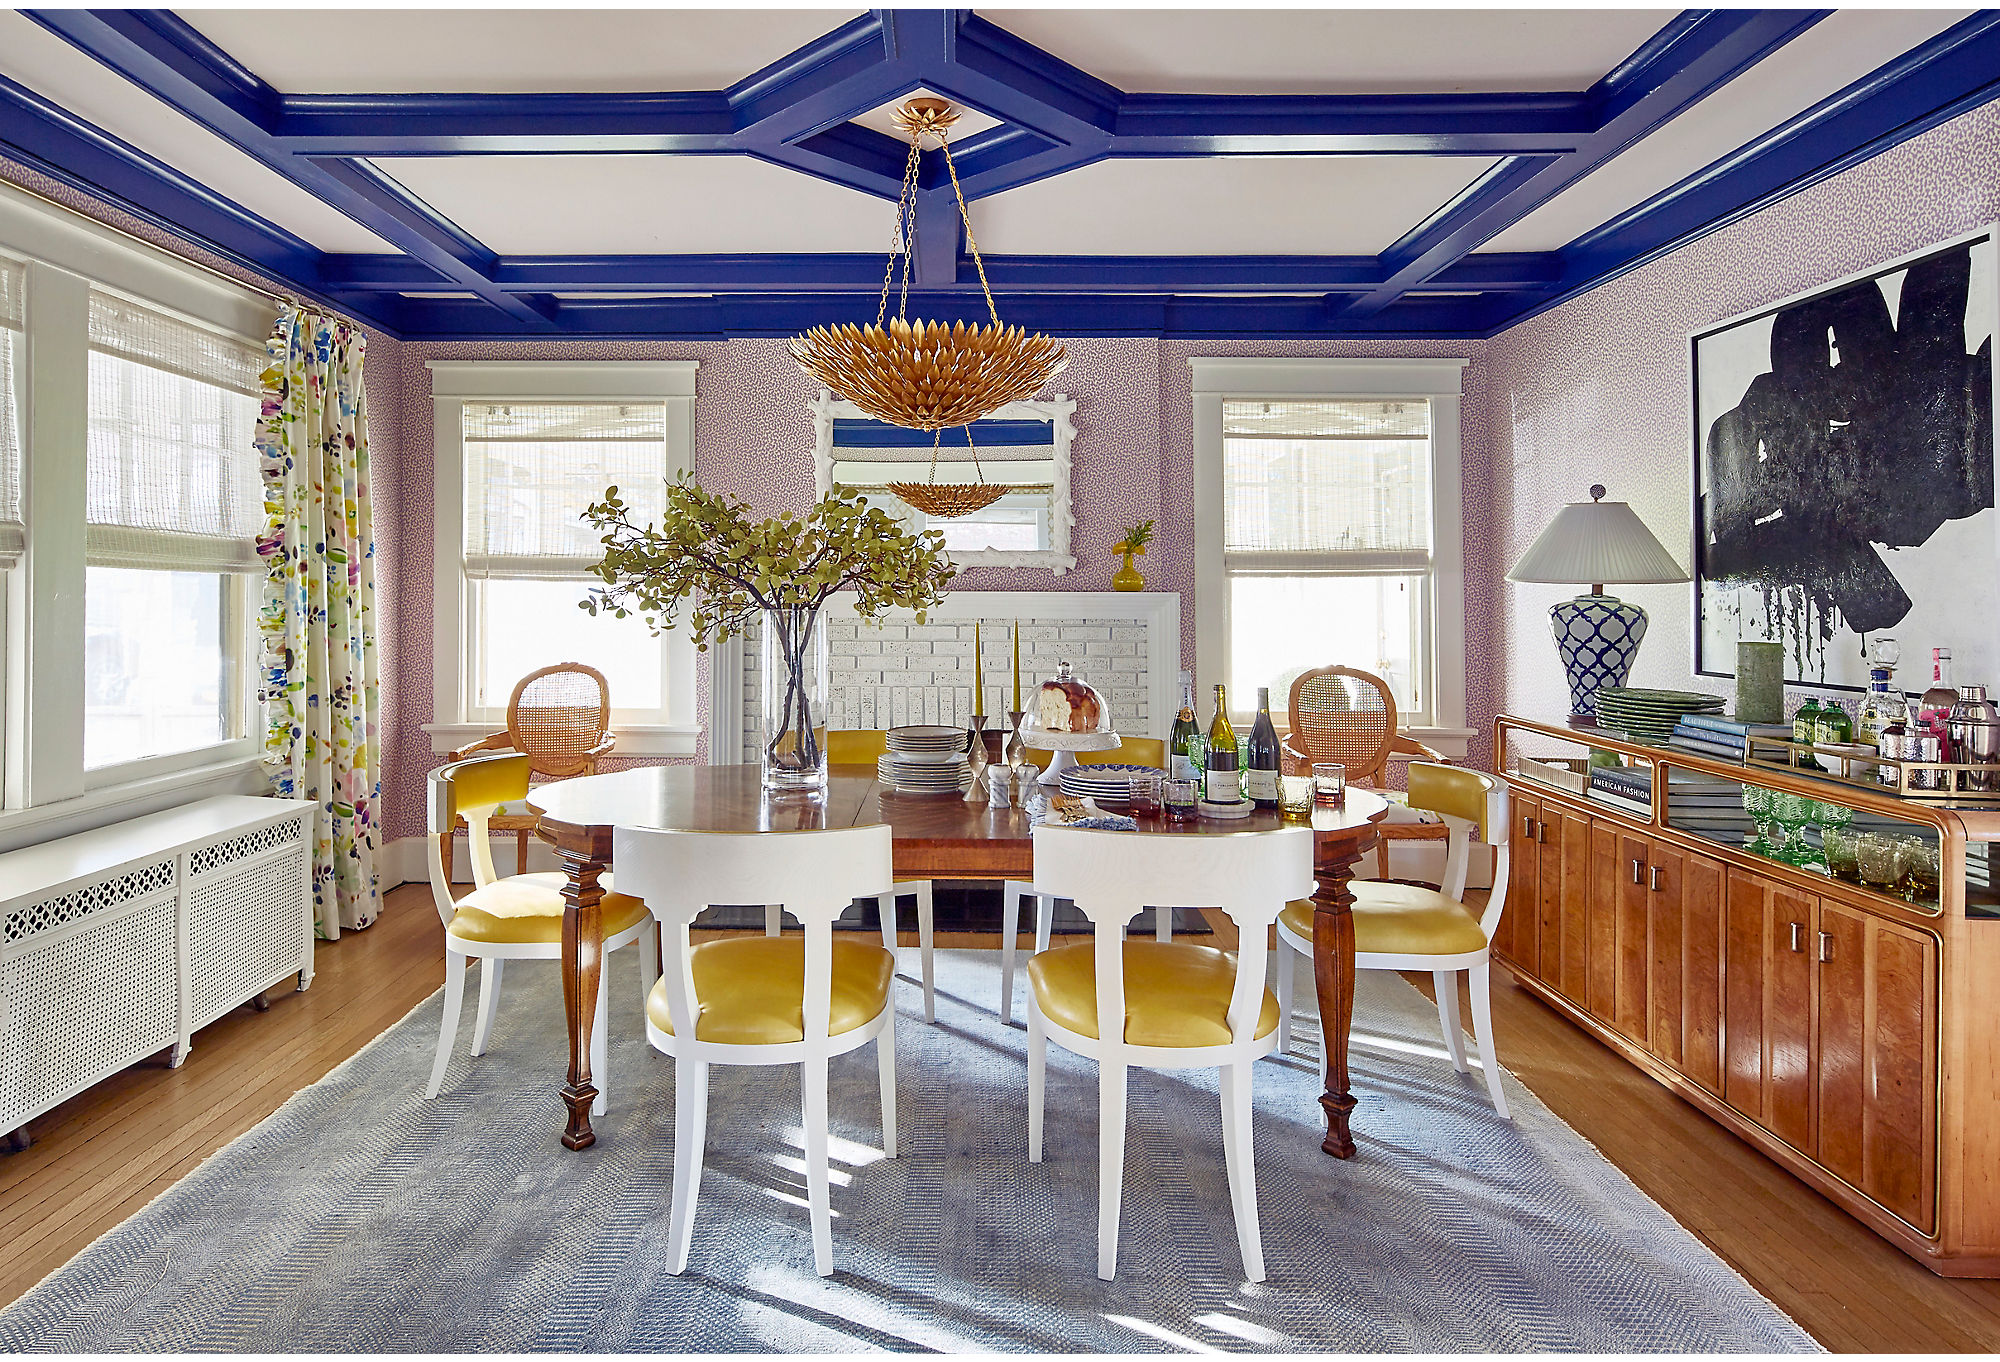 The dining room stuns in an array of color. The ceiling's trim is Blue by Benjamin Moore, while the rest of the room is draped in complementary lavenders and yellows. The yellow seats are an exact match for the yellow lacquer on the foyer's ceiling. Find an identical light fixture here.